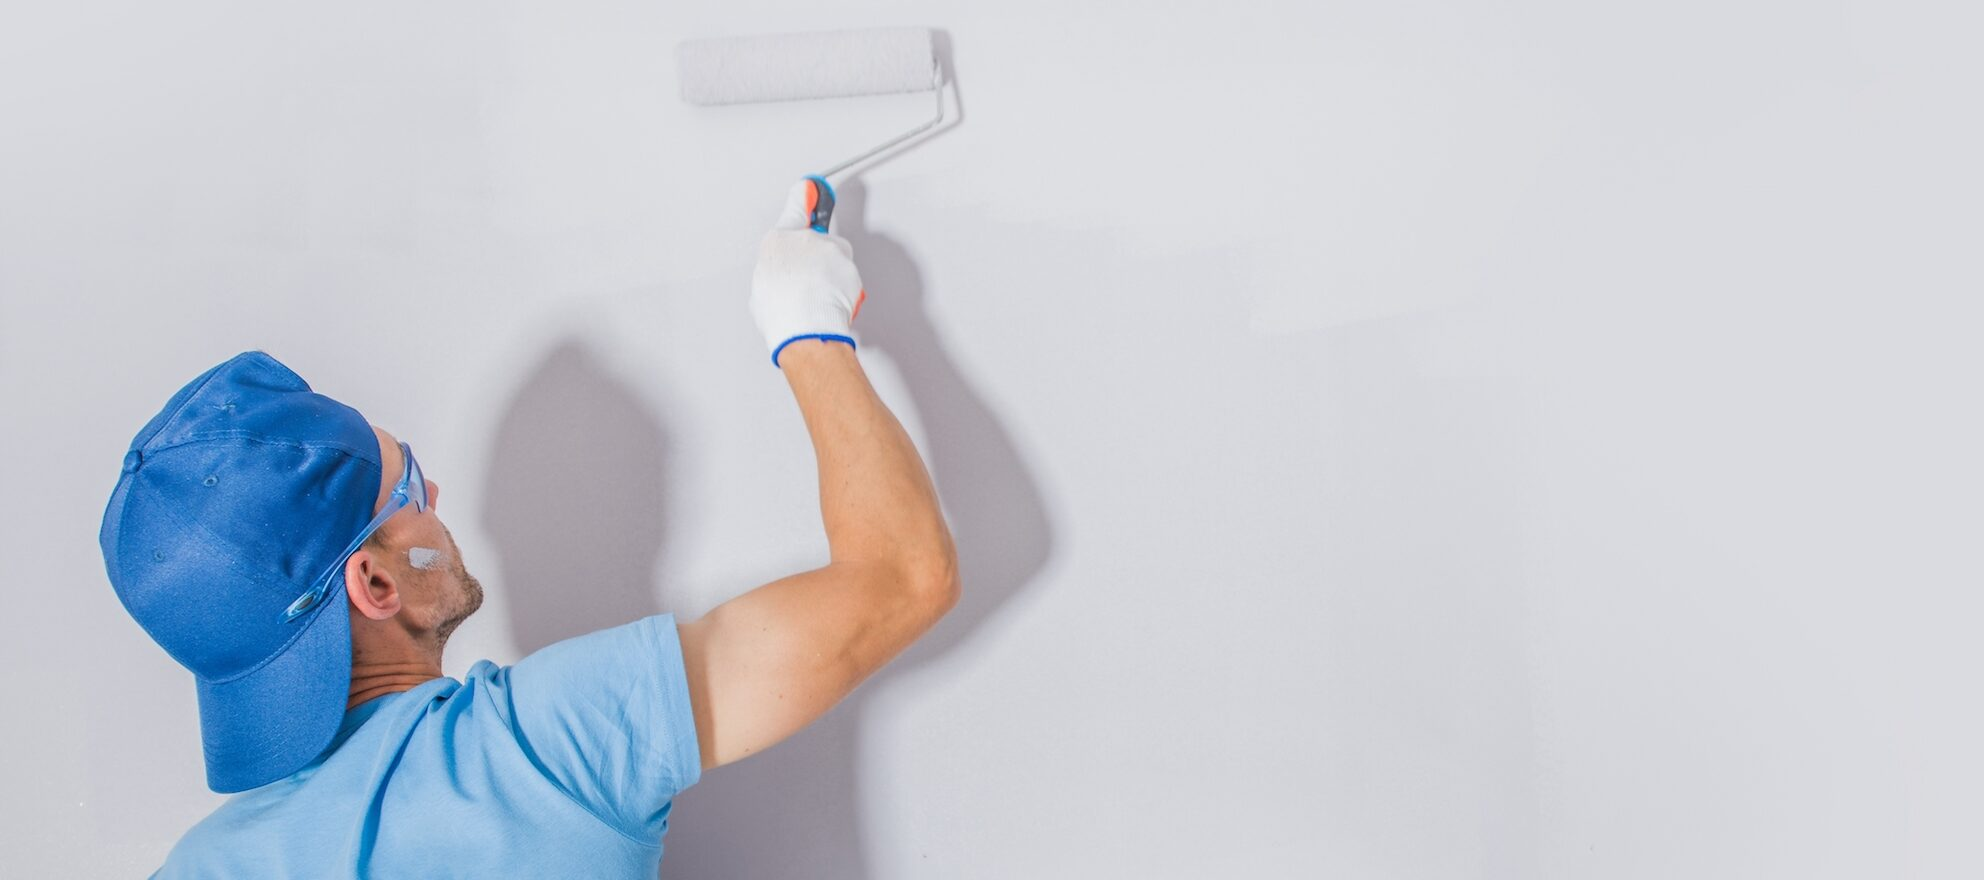 A man painting a wall with a roller